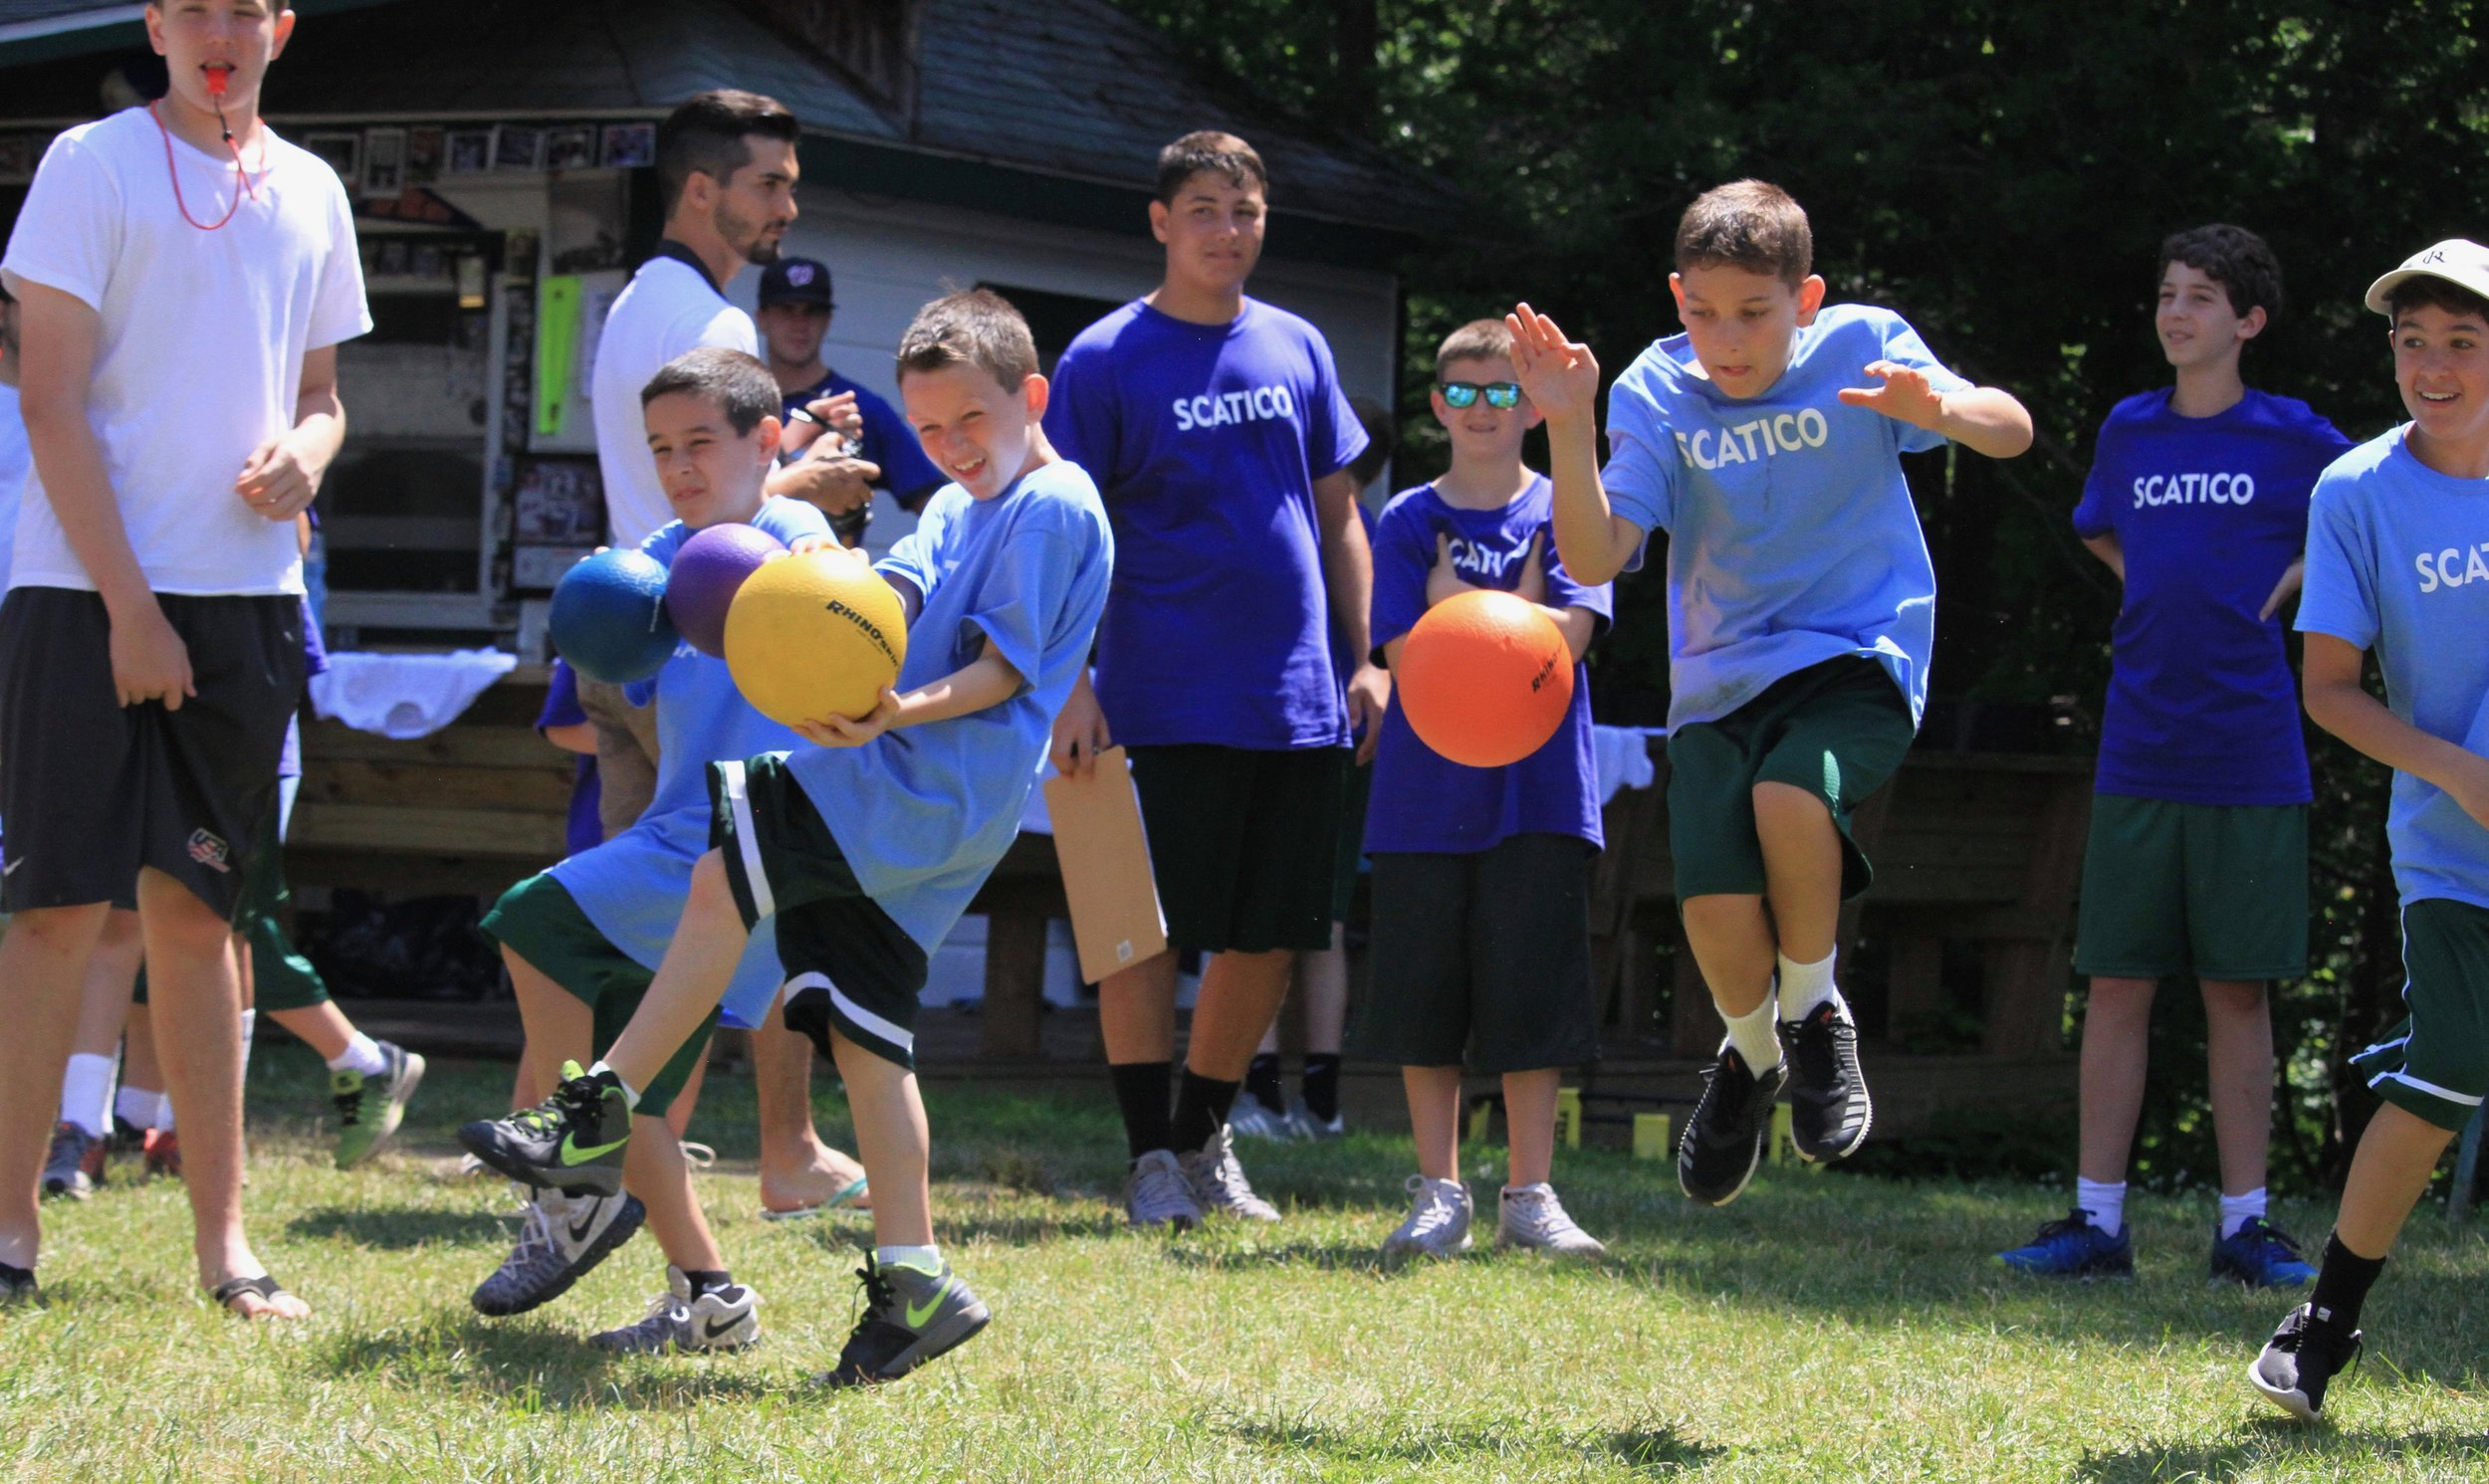 Lower Hill boys play an intense game of dodgeball for College Bowl